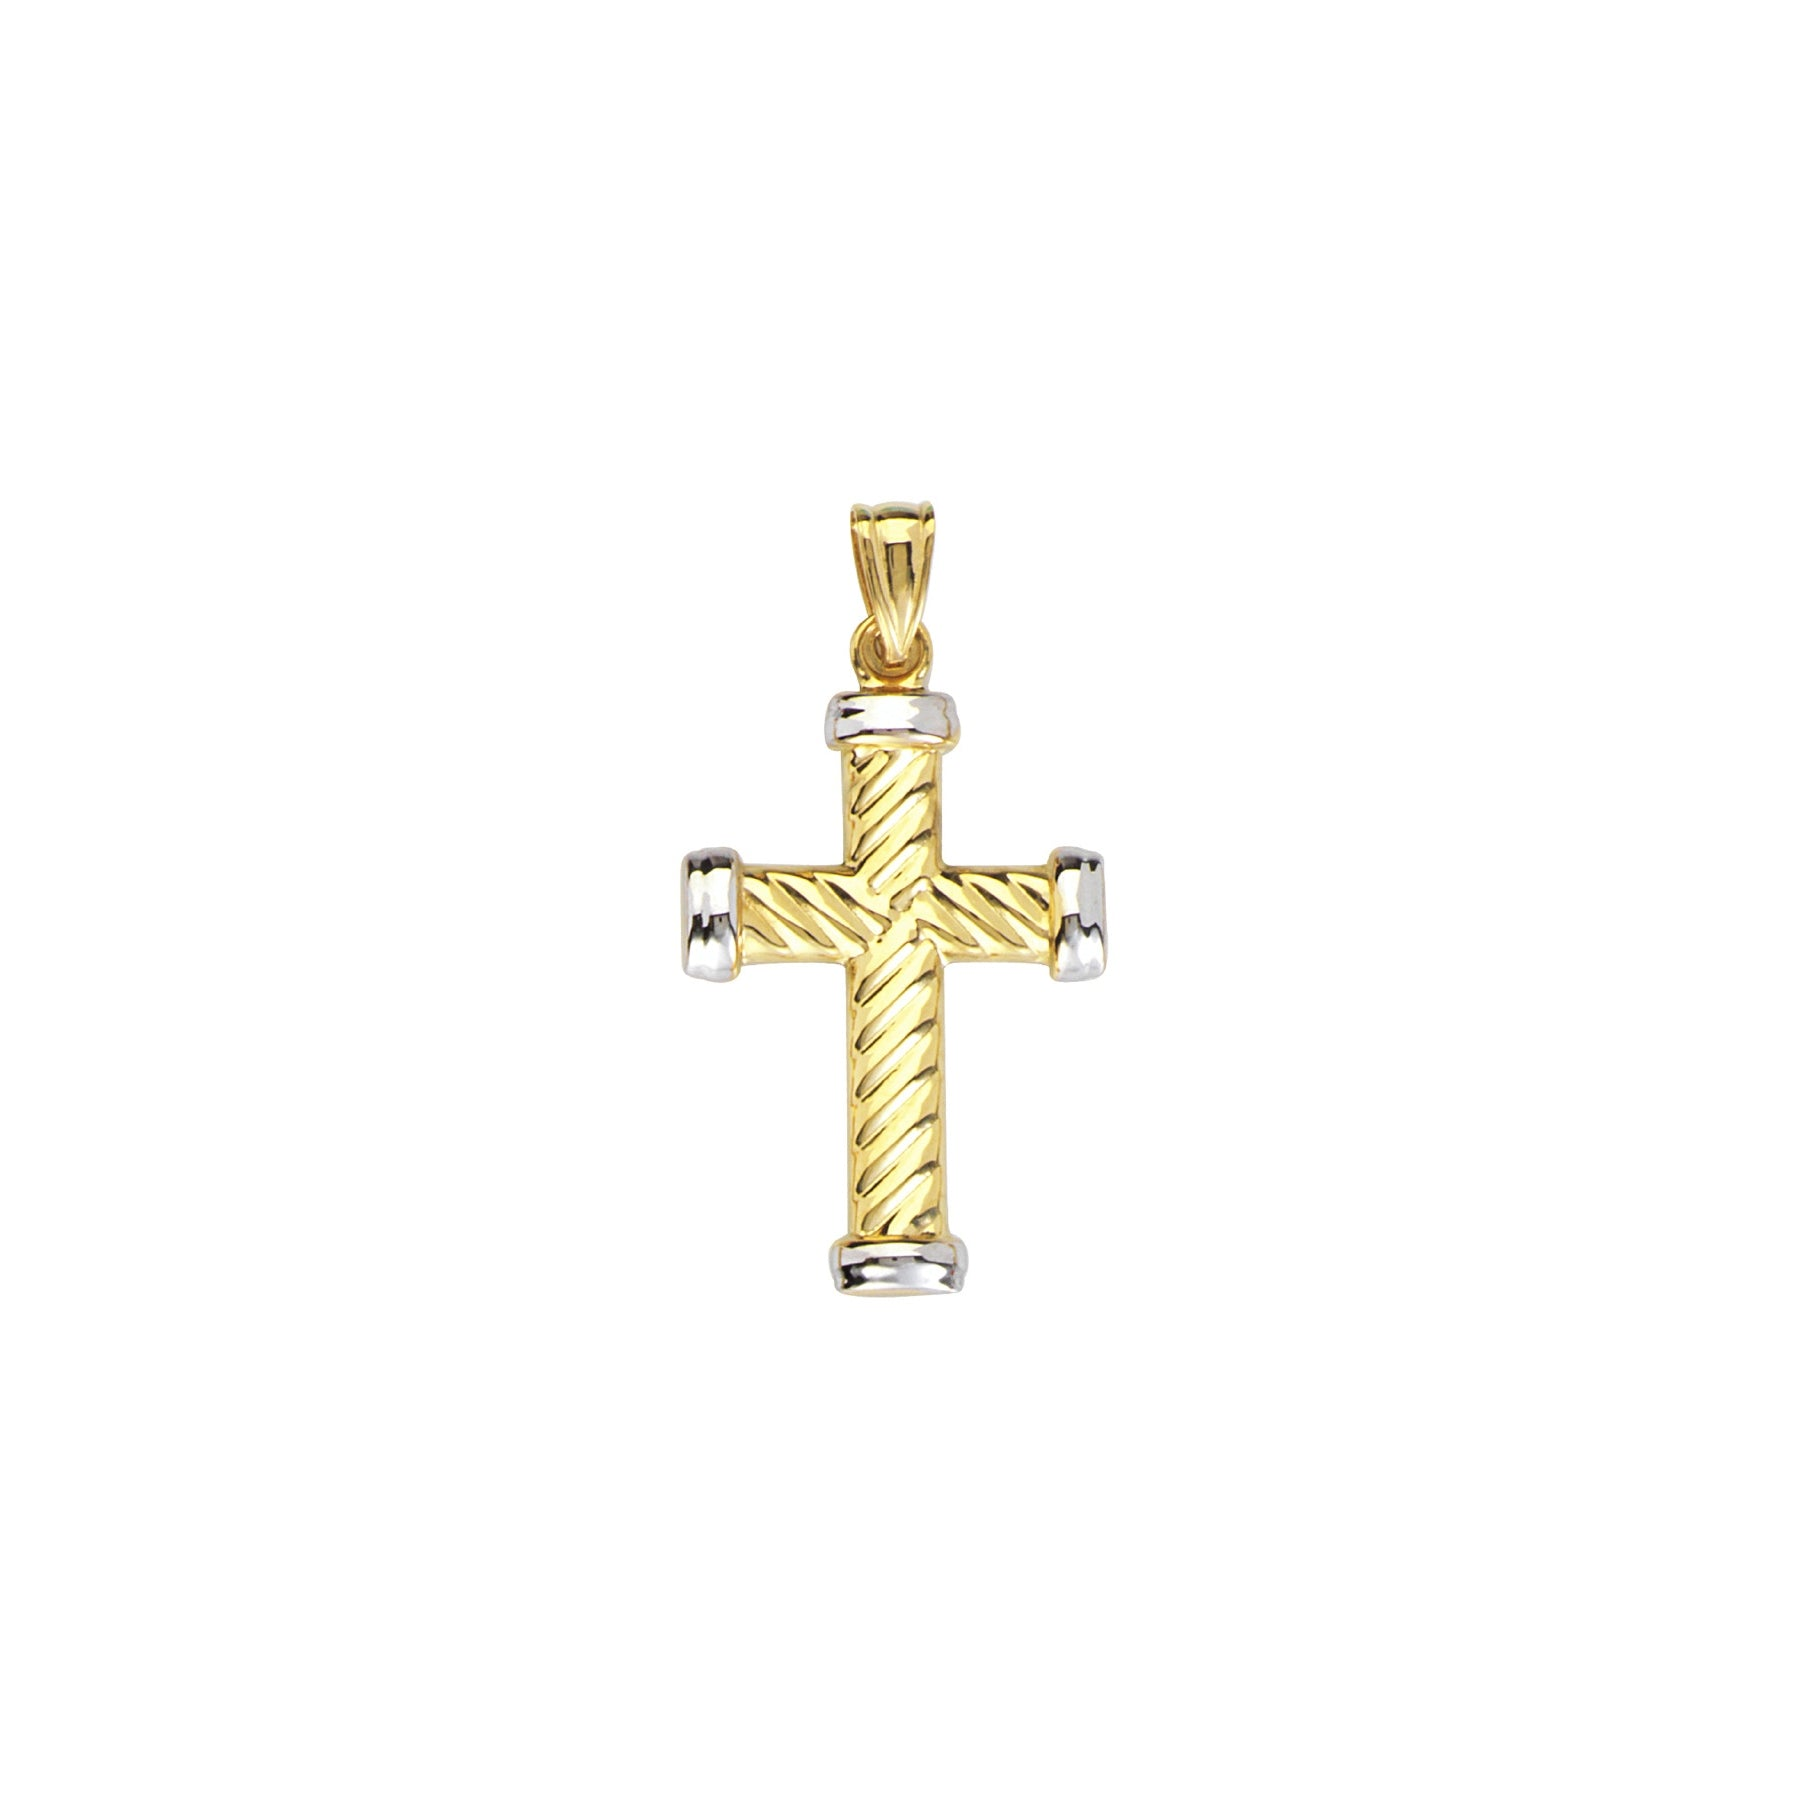 Two Tone Rope Design Cross Pendant, 14 Karat Gold